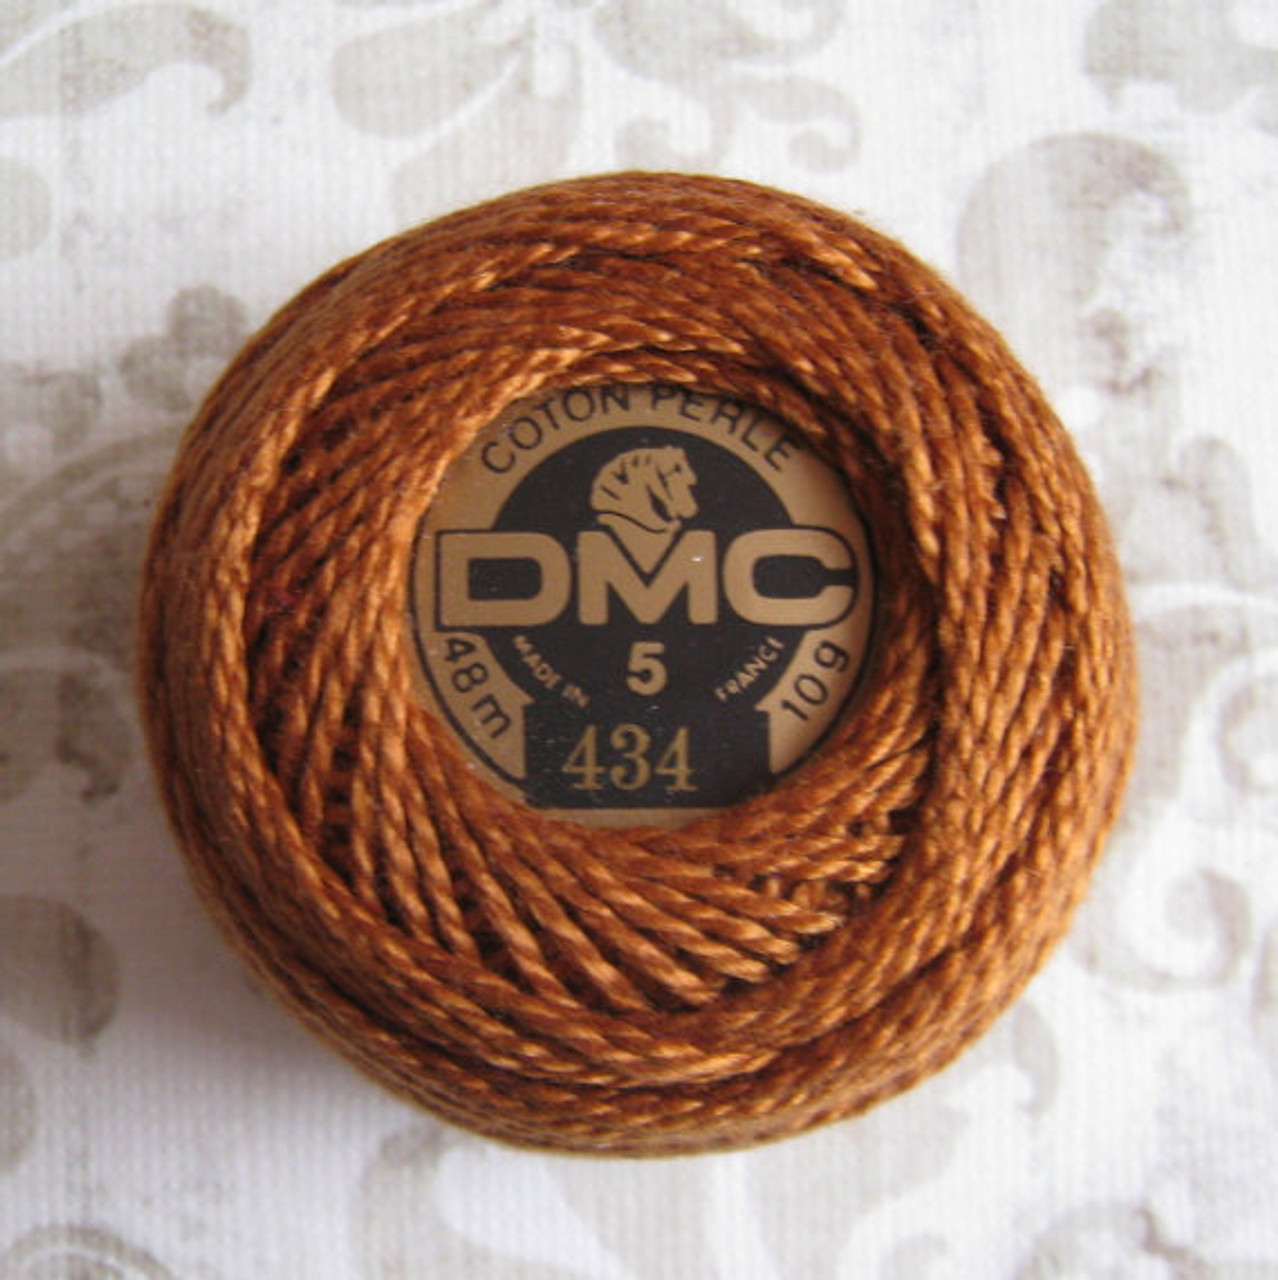 DMC Pearl, Perle Cotton Thread Ball | Size 5 | 434 Light Brown